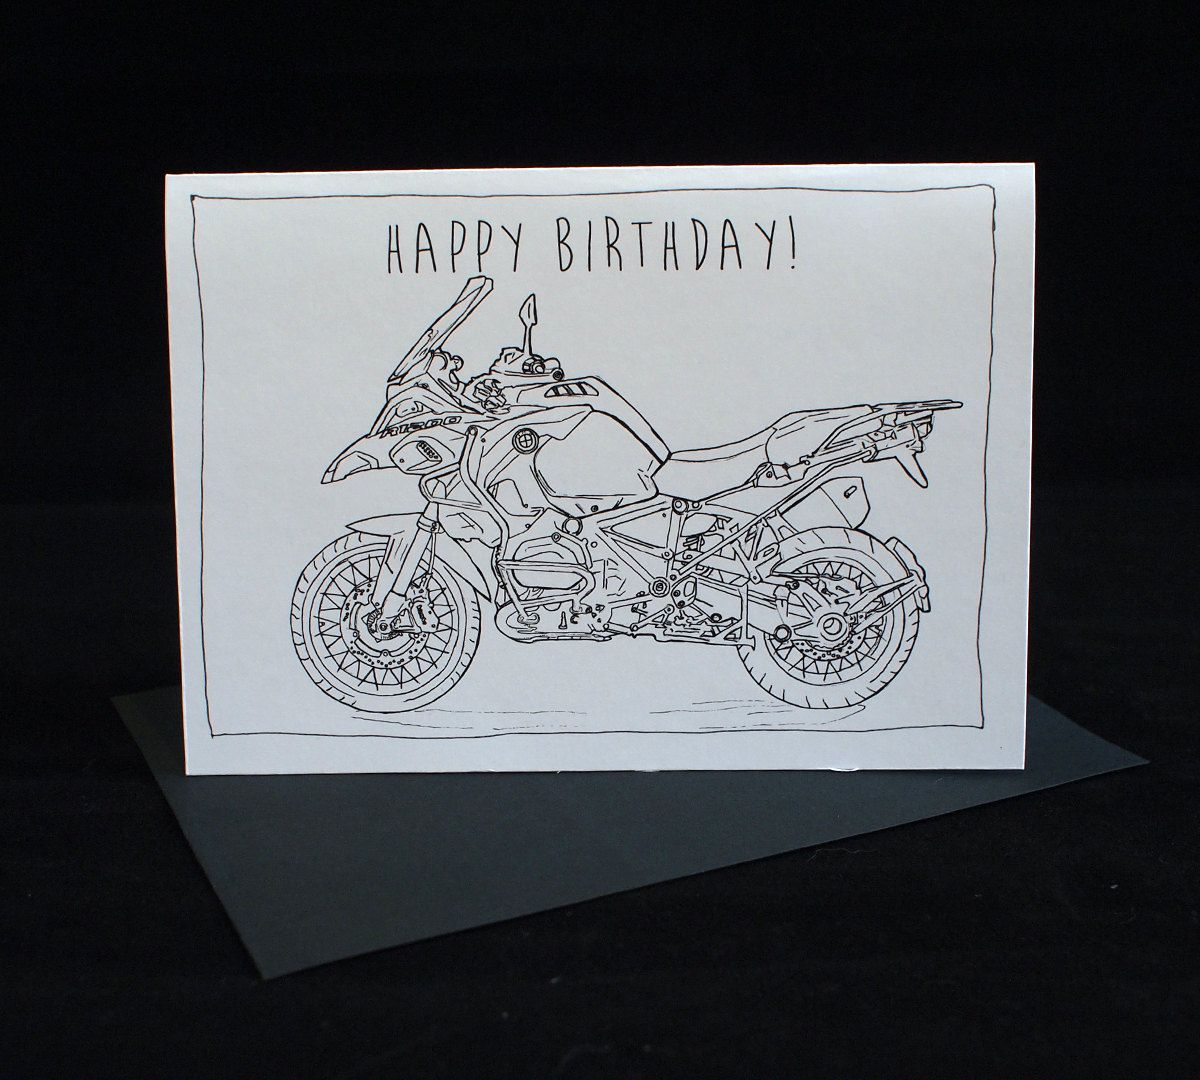 Motorcycle birthday card bmw r1200gs a6 6 x 4 103mm x bmw r1200gs black white motorcycle birthday card a6 6 x 4 bookmarktalkfo